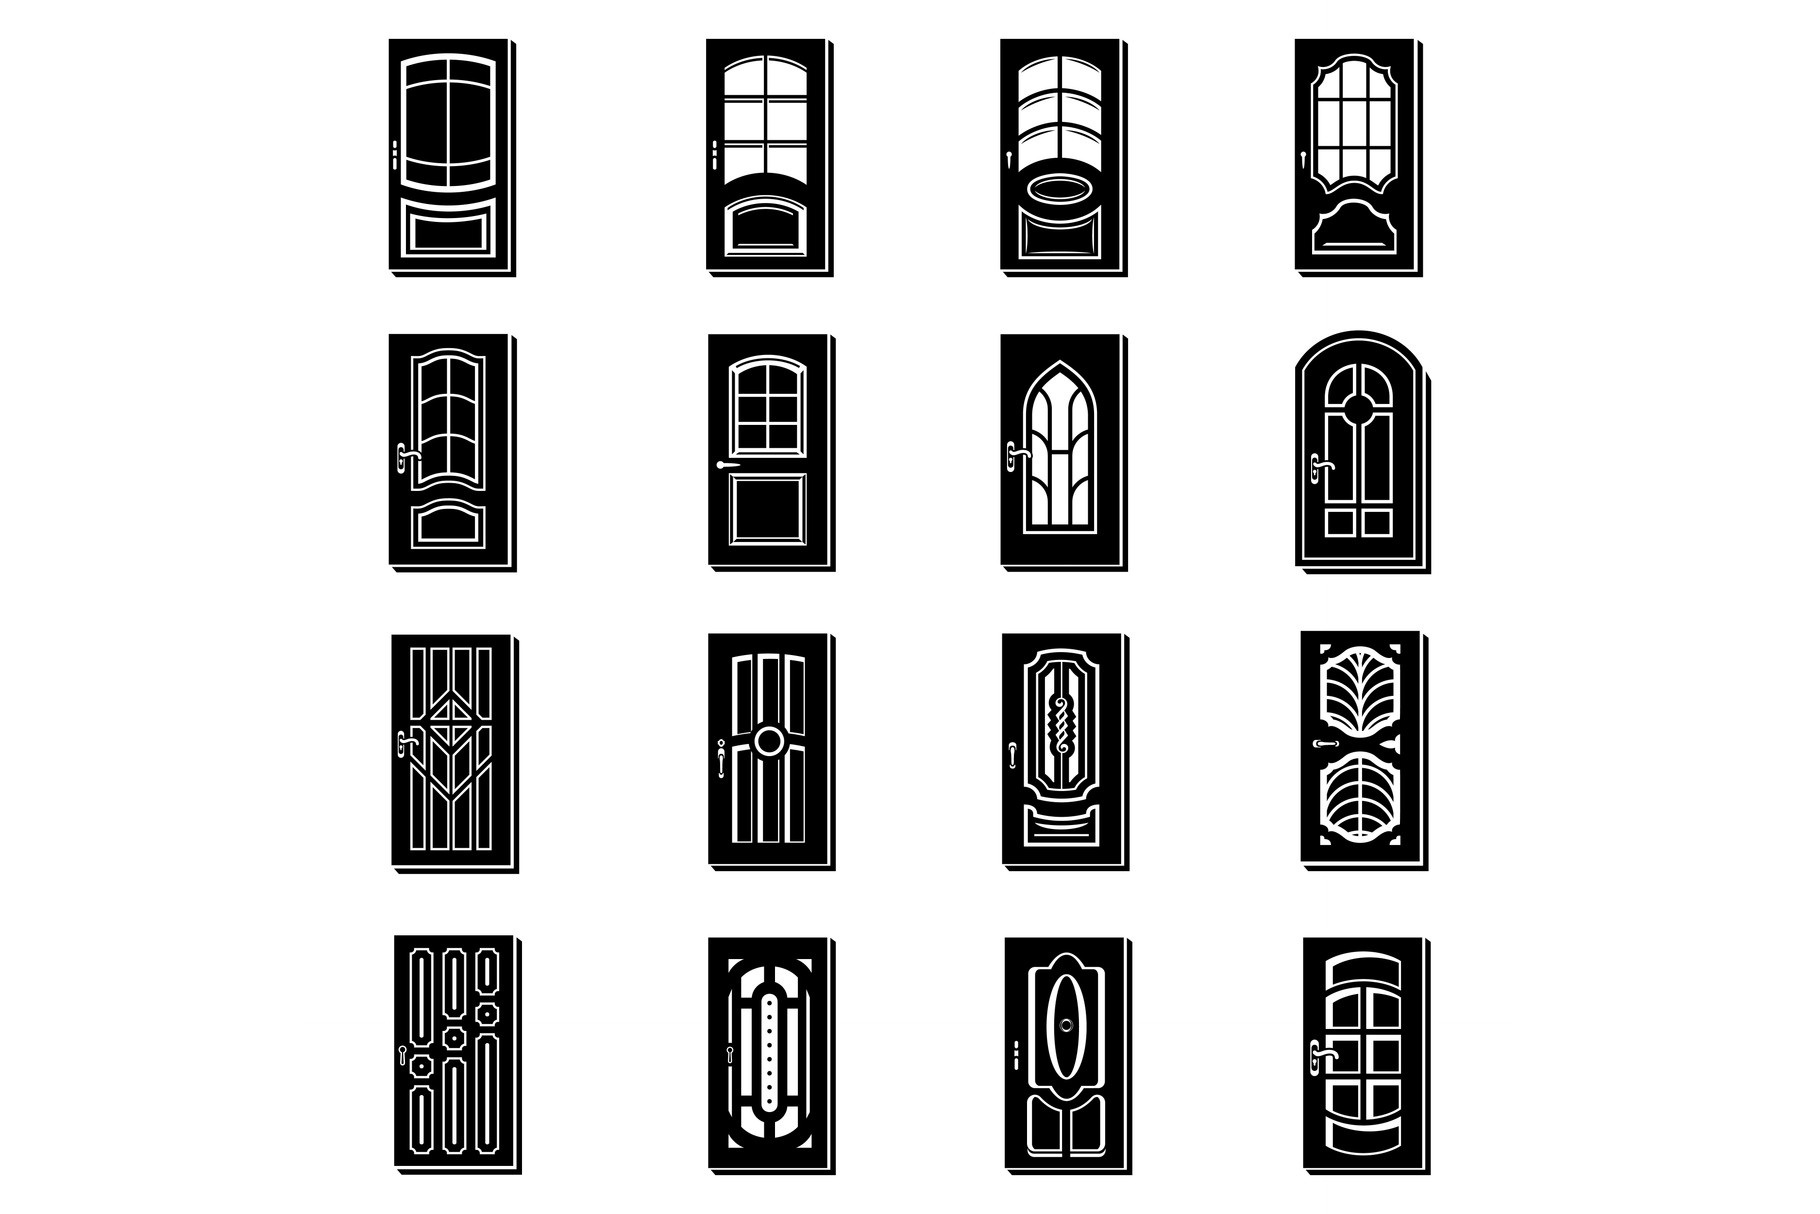 Door icons set, simple style example image 1